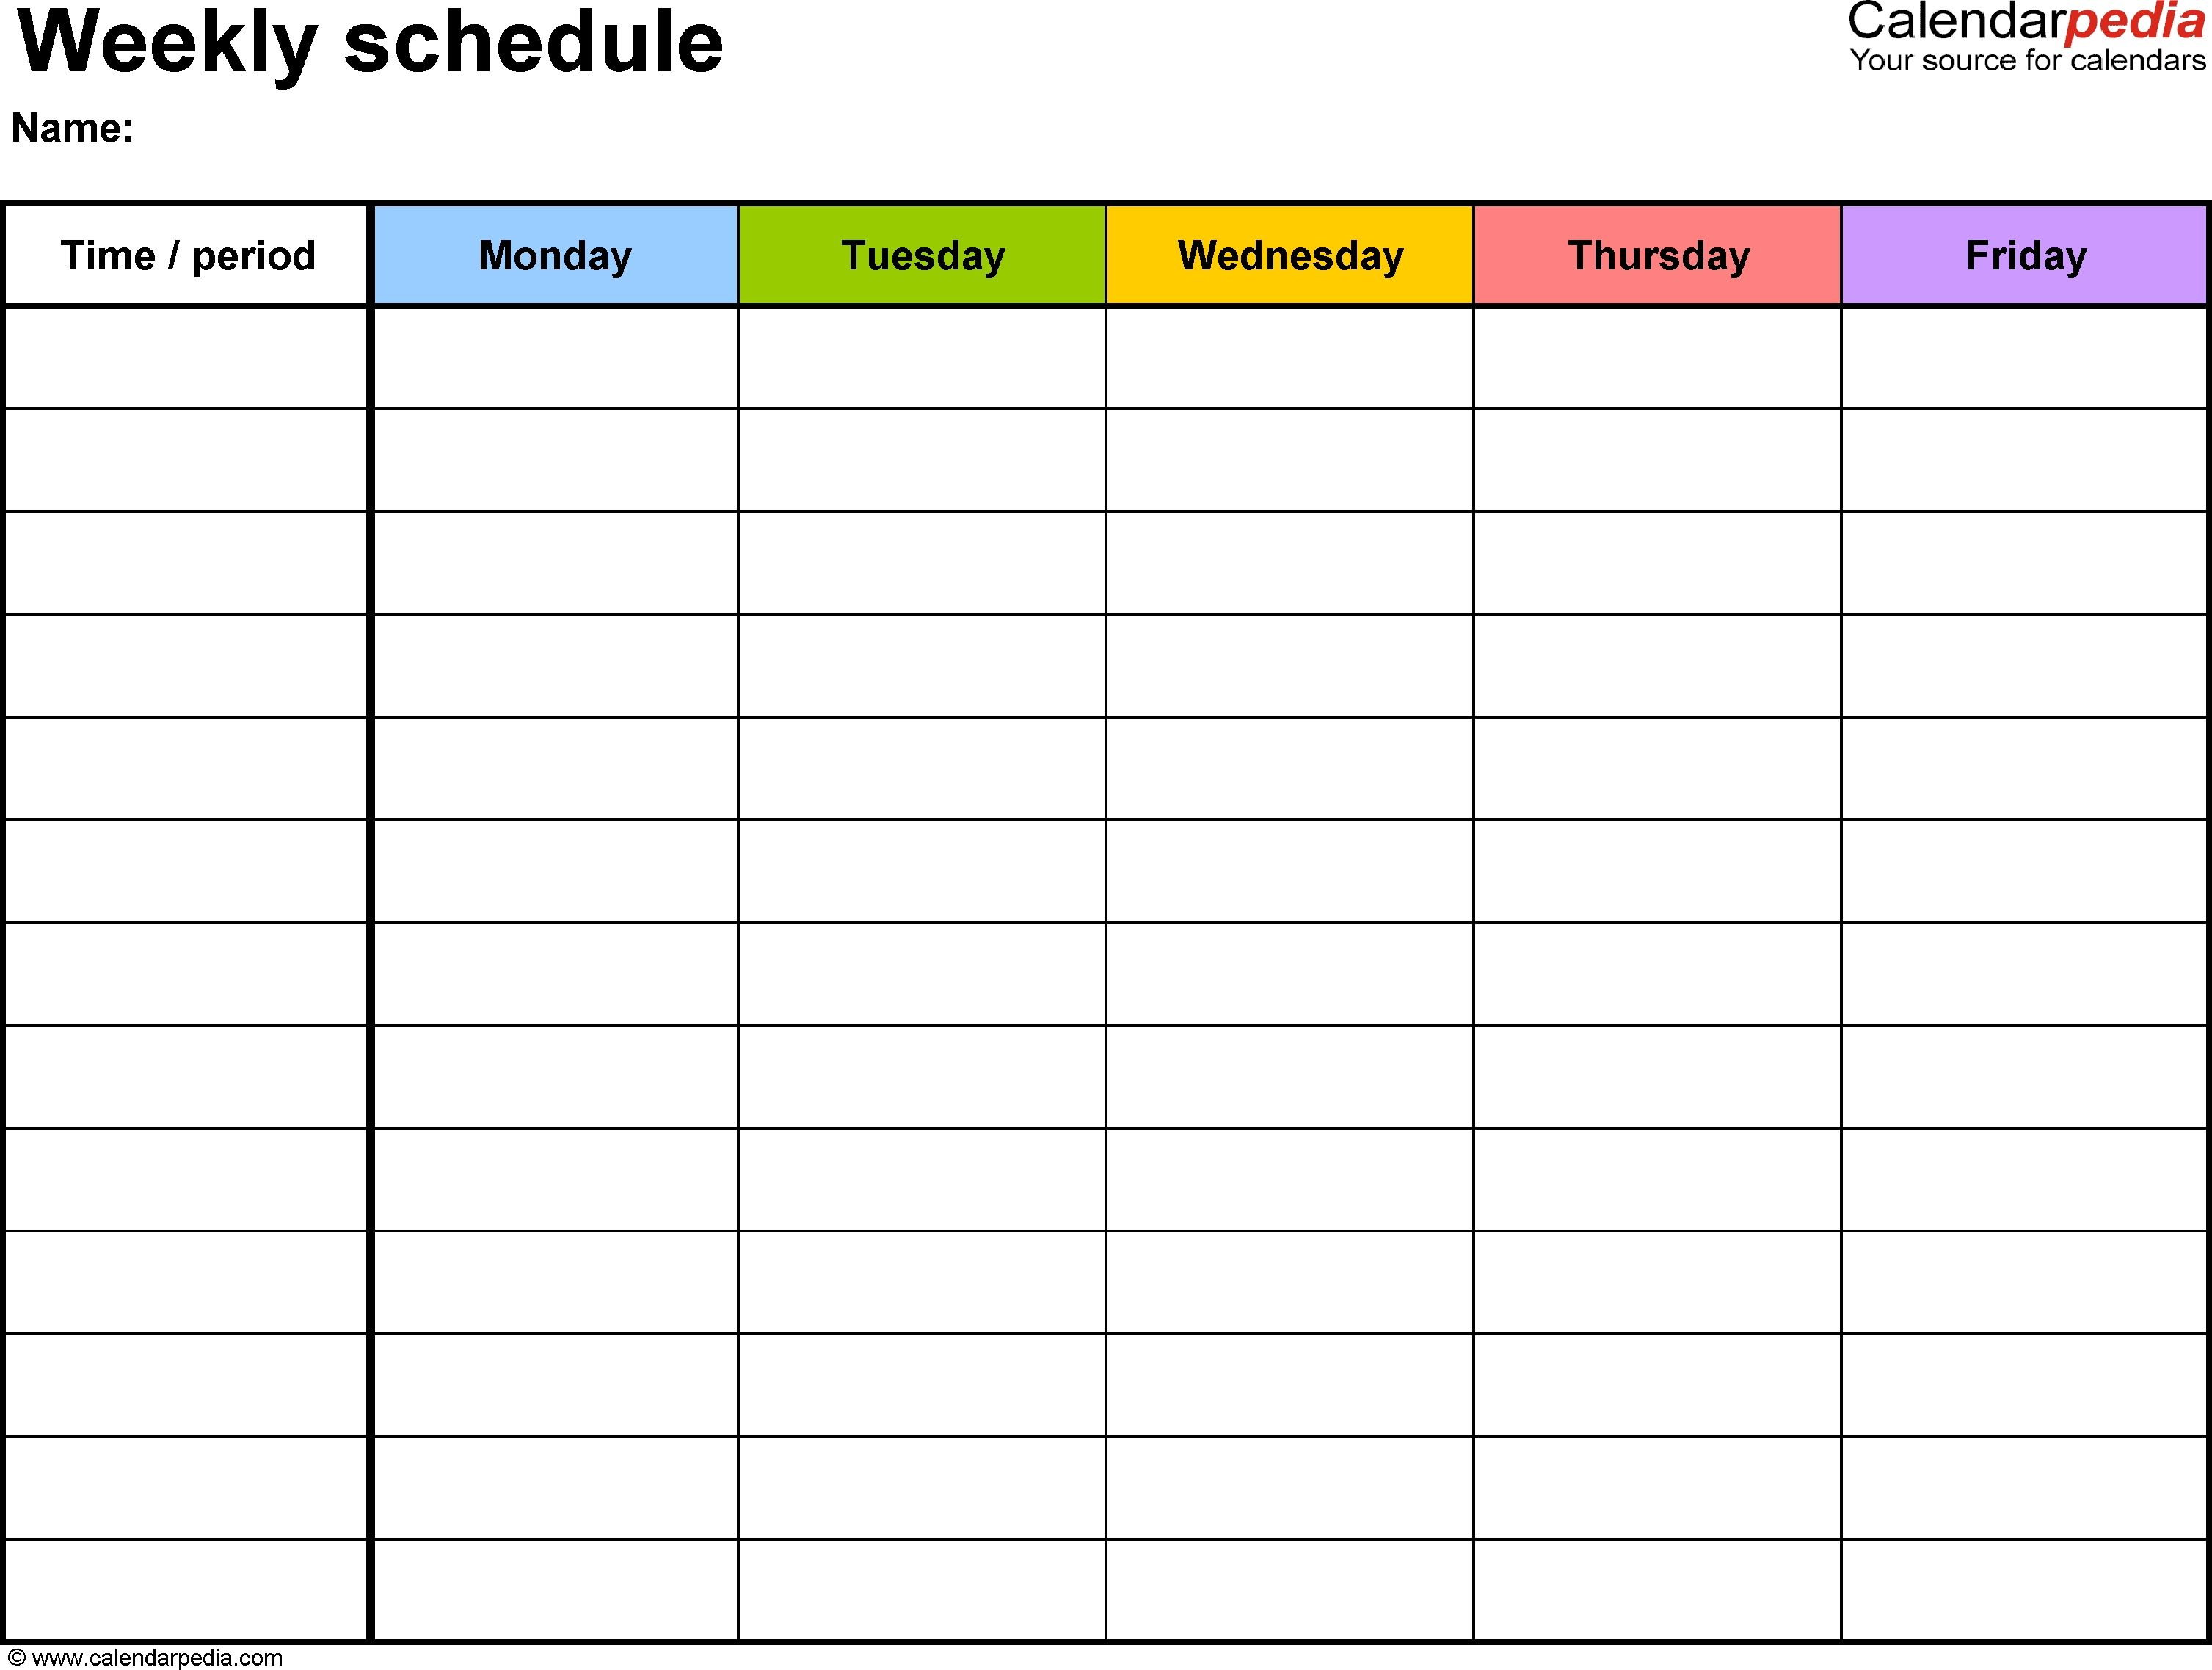 Free Weekly Schedule Templates For Excel 18 Templates Get In